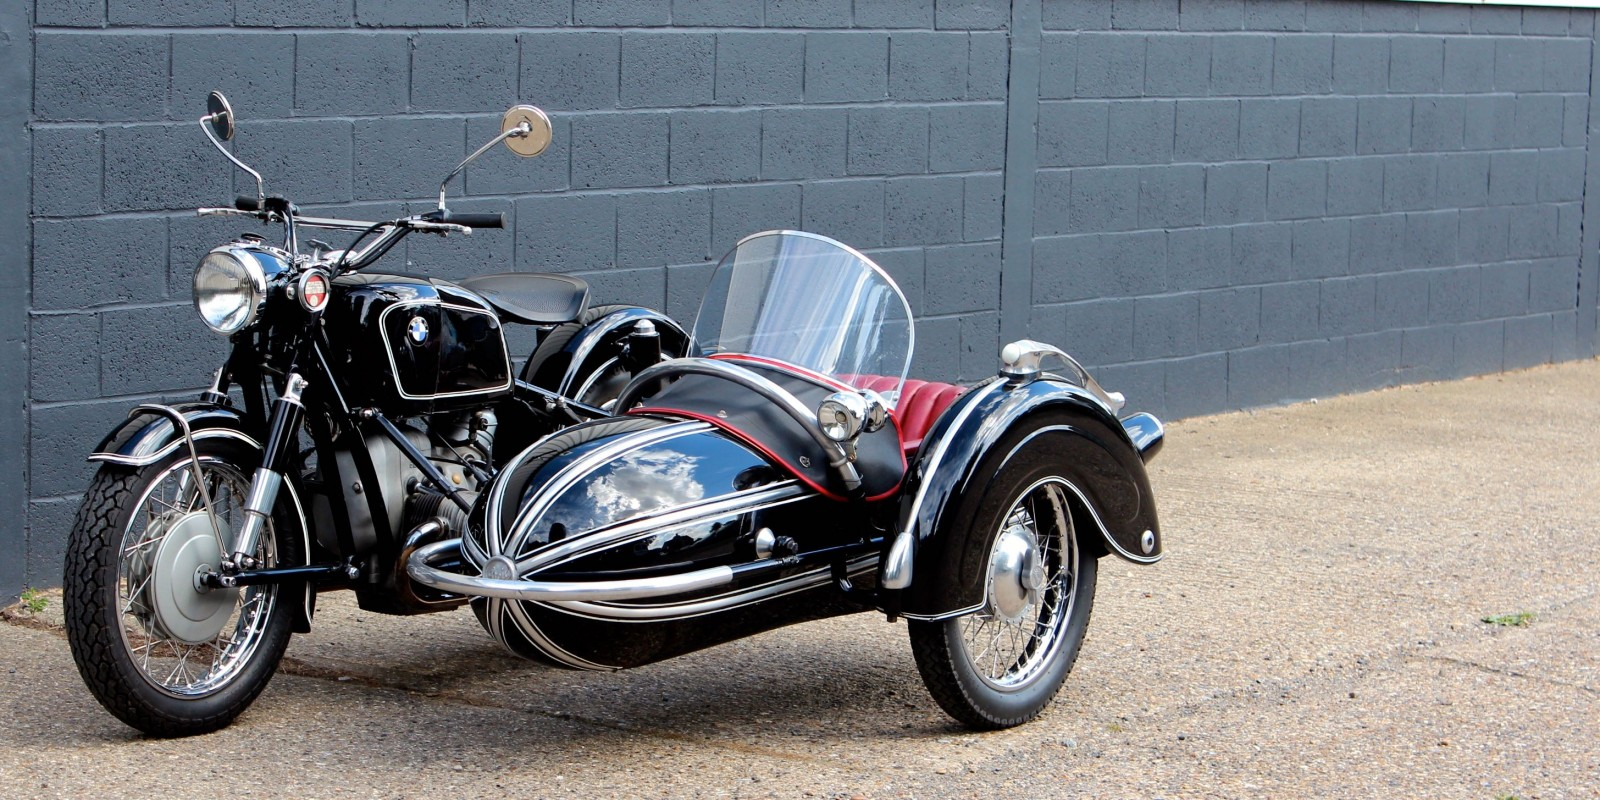 Bmw Motorcycle And Sidecar For Sale Uk